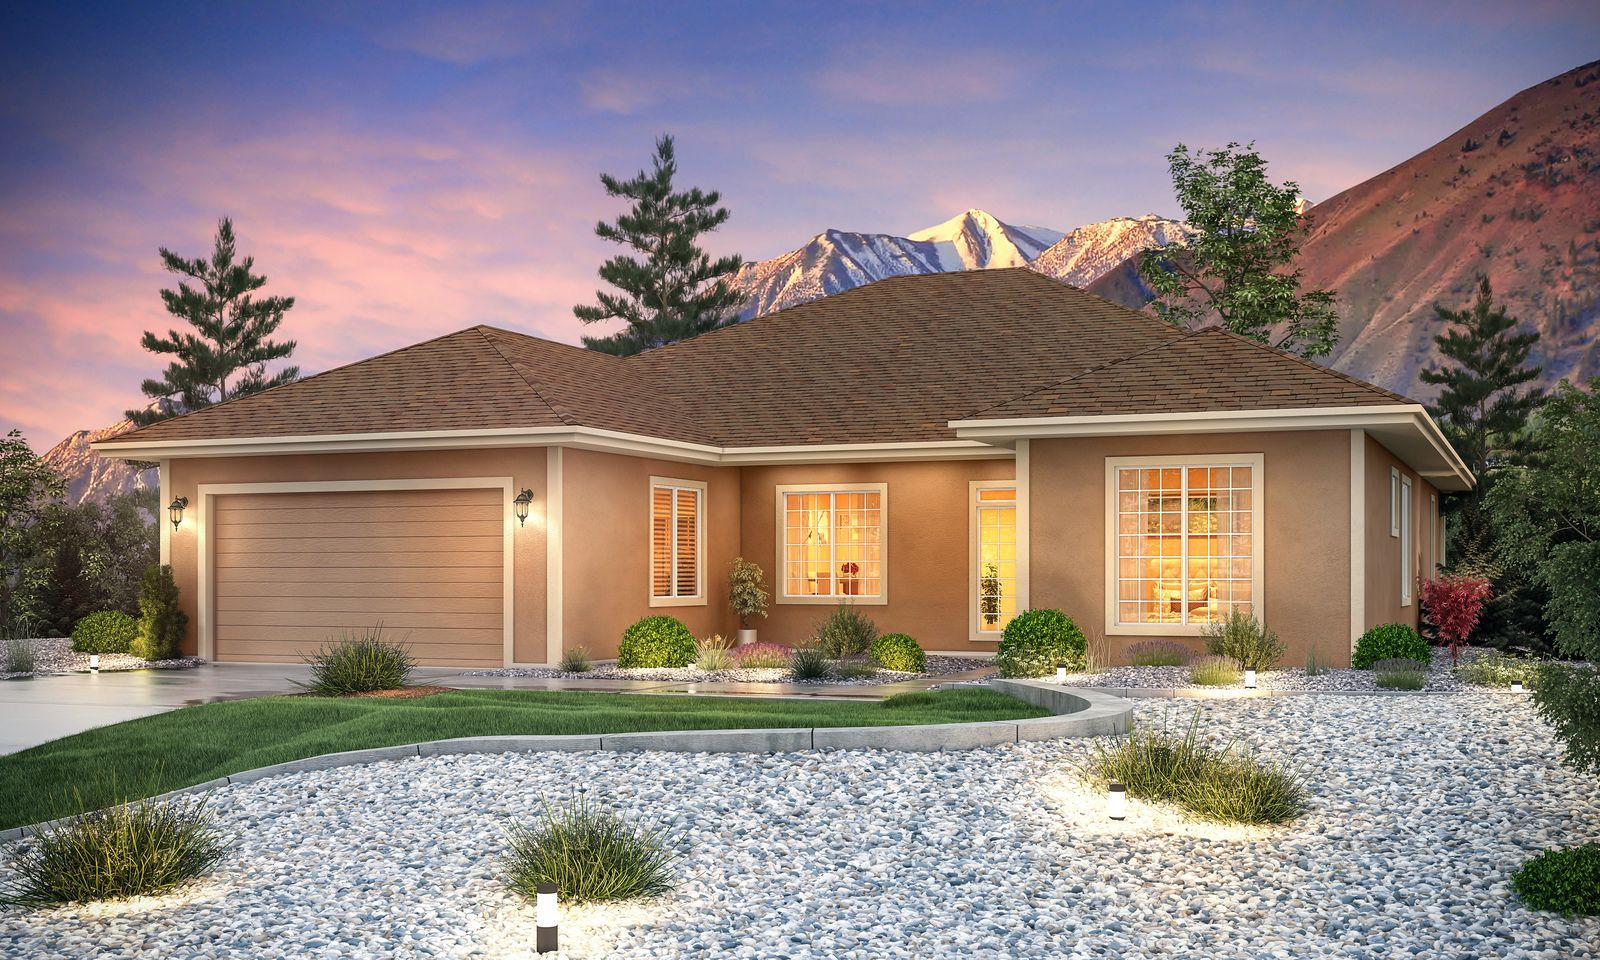 Single Family for Active at Cottages At Carson Valley By Carter Hill - Residence 3 - 2150 Plan 1227 West Cottage Loop Gardnerville, Nevada 89460 United States